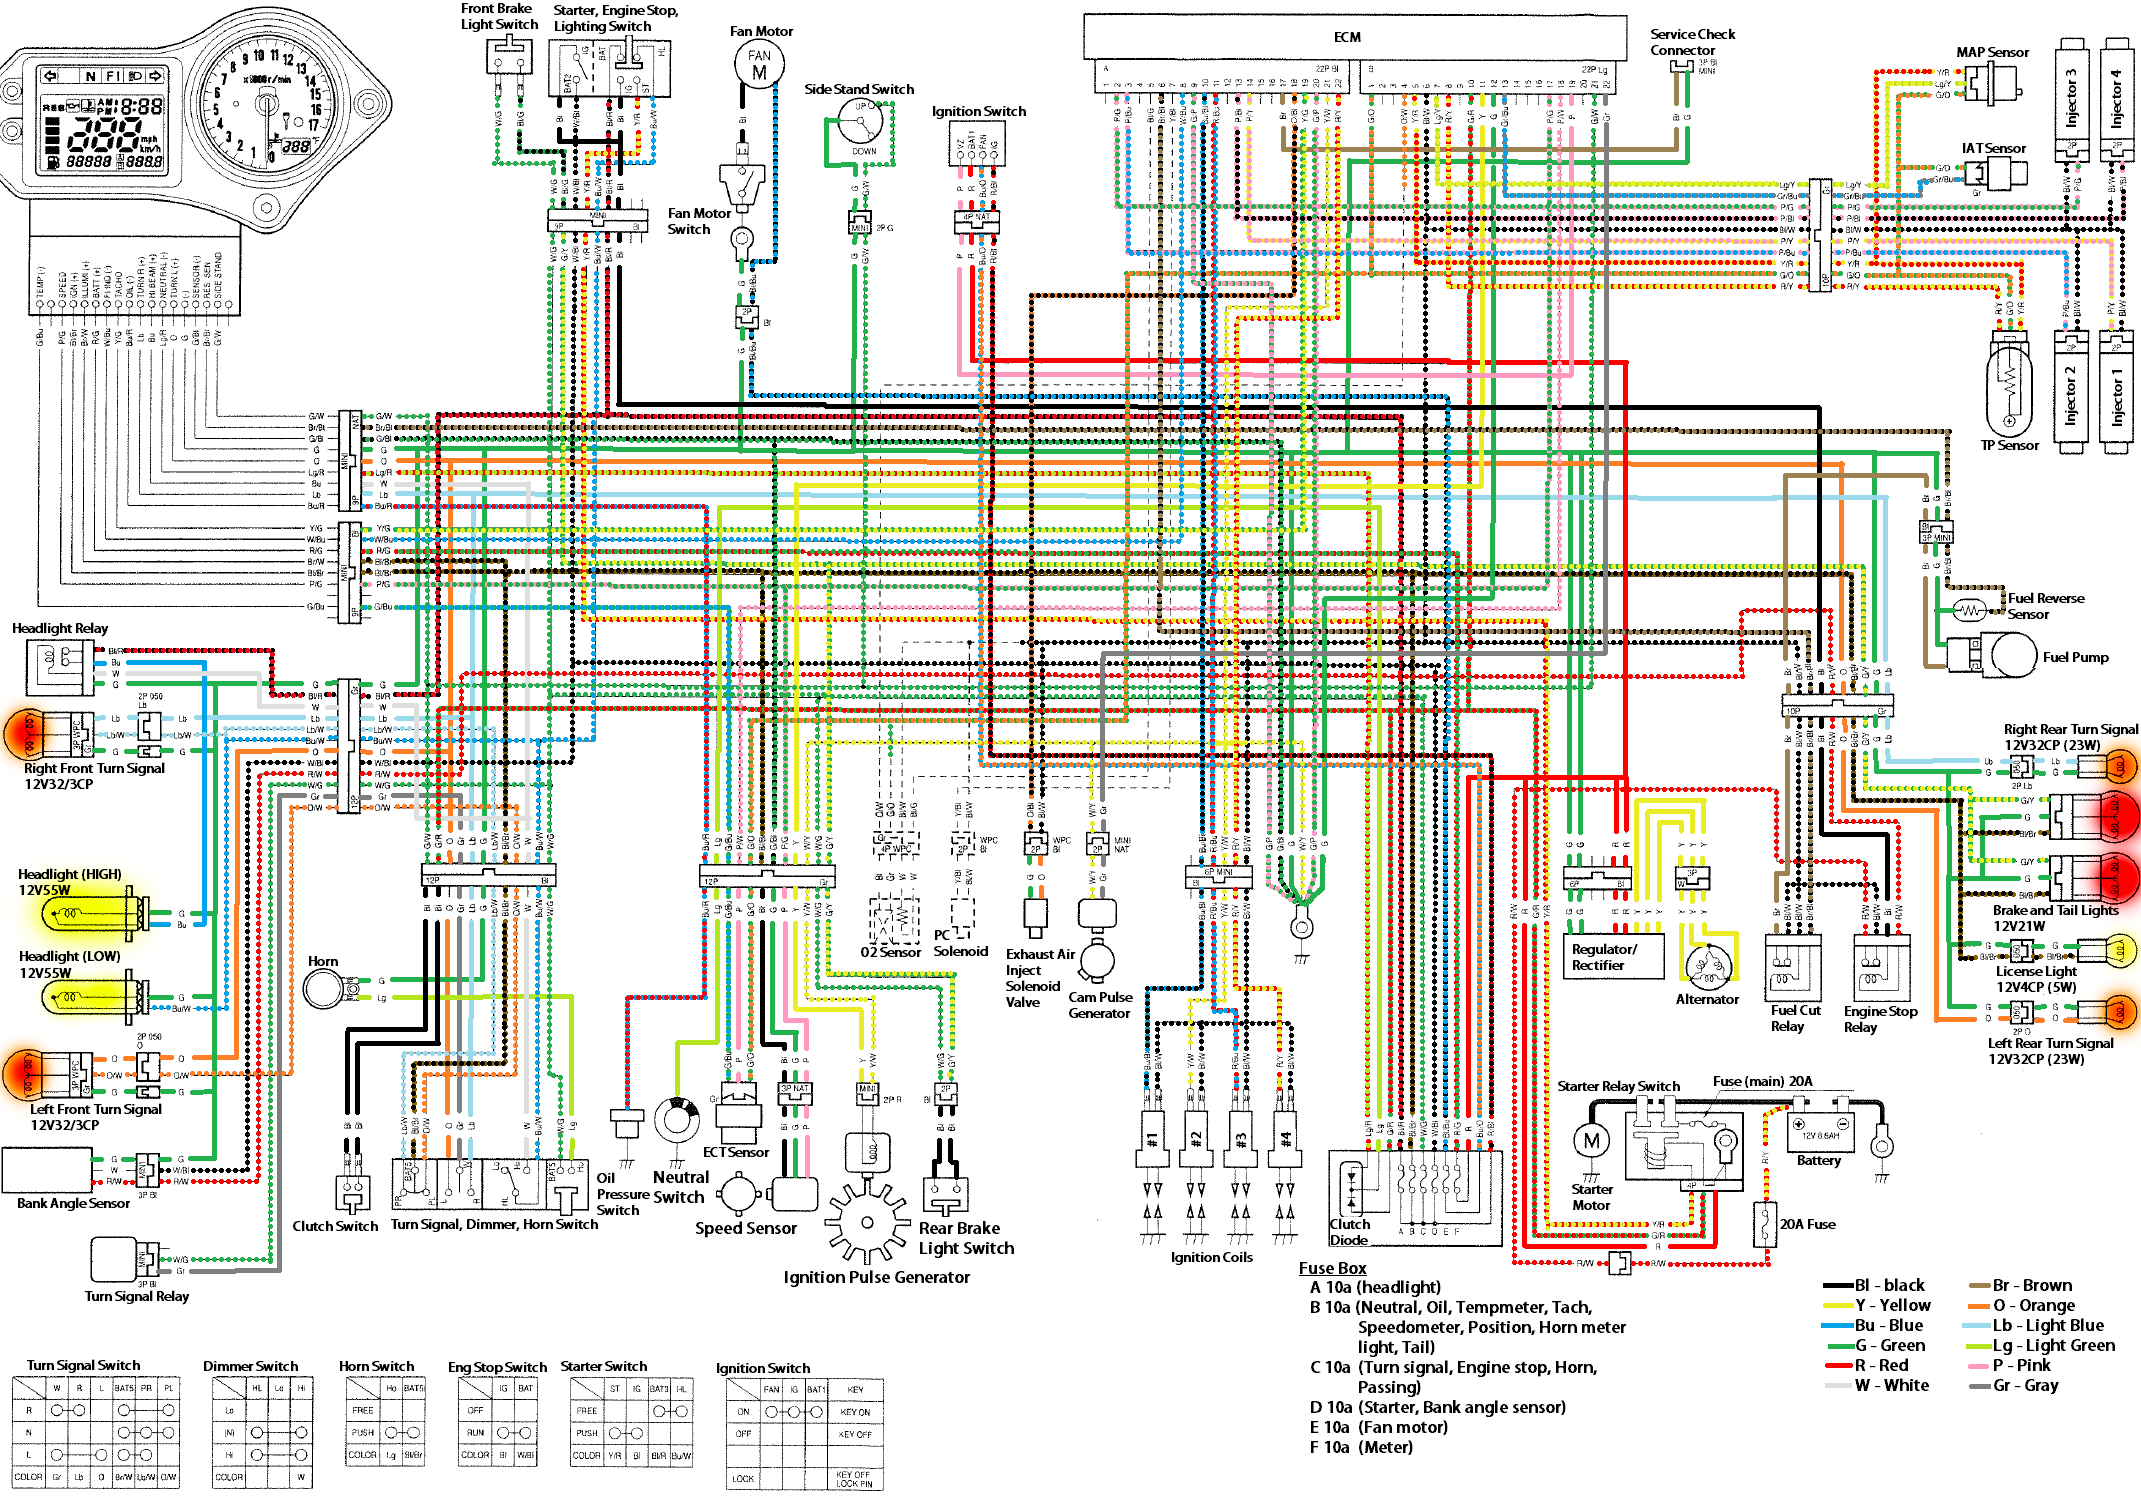 [SCHEMATICS_4FR]  How To Within Cbr 600 F4 Wiring Diagram Gooddy Org And | Diagram, Cbr 600,  Cbr | 1989 Cbr 600 Wiring Diagram |  | Pinterest